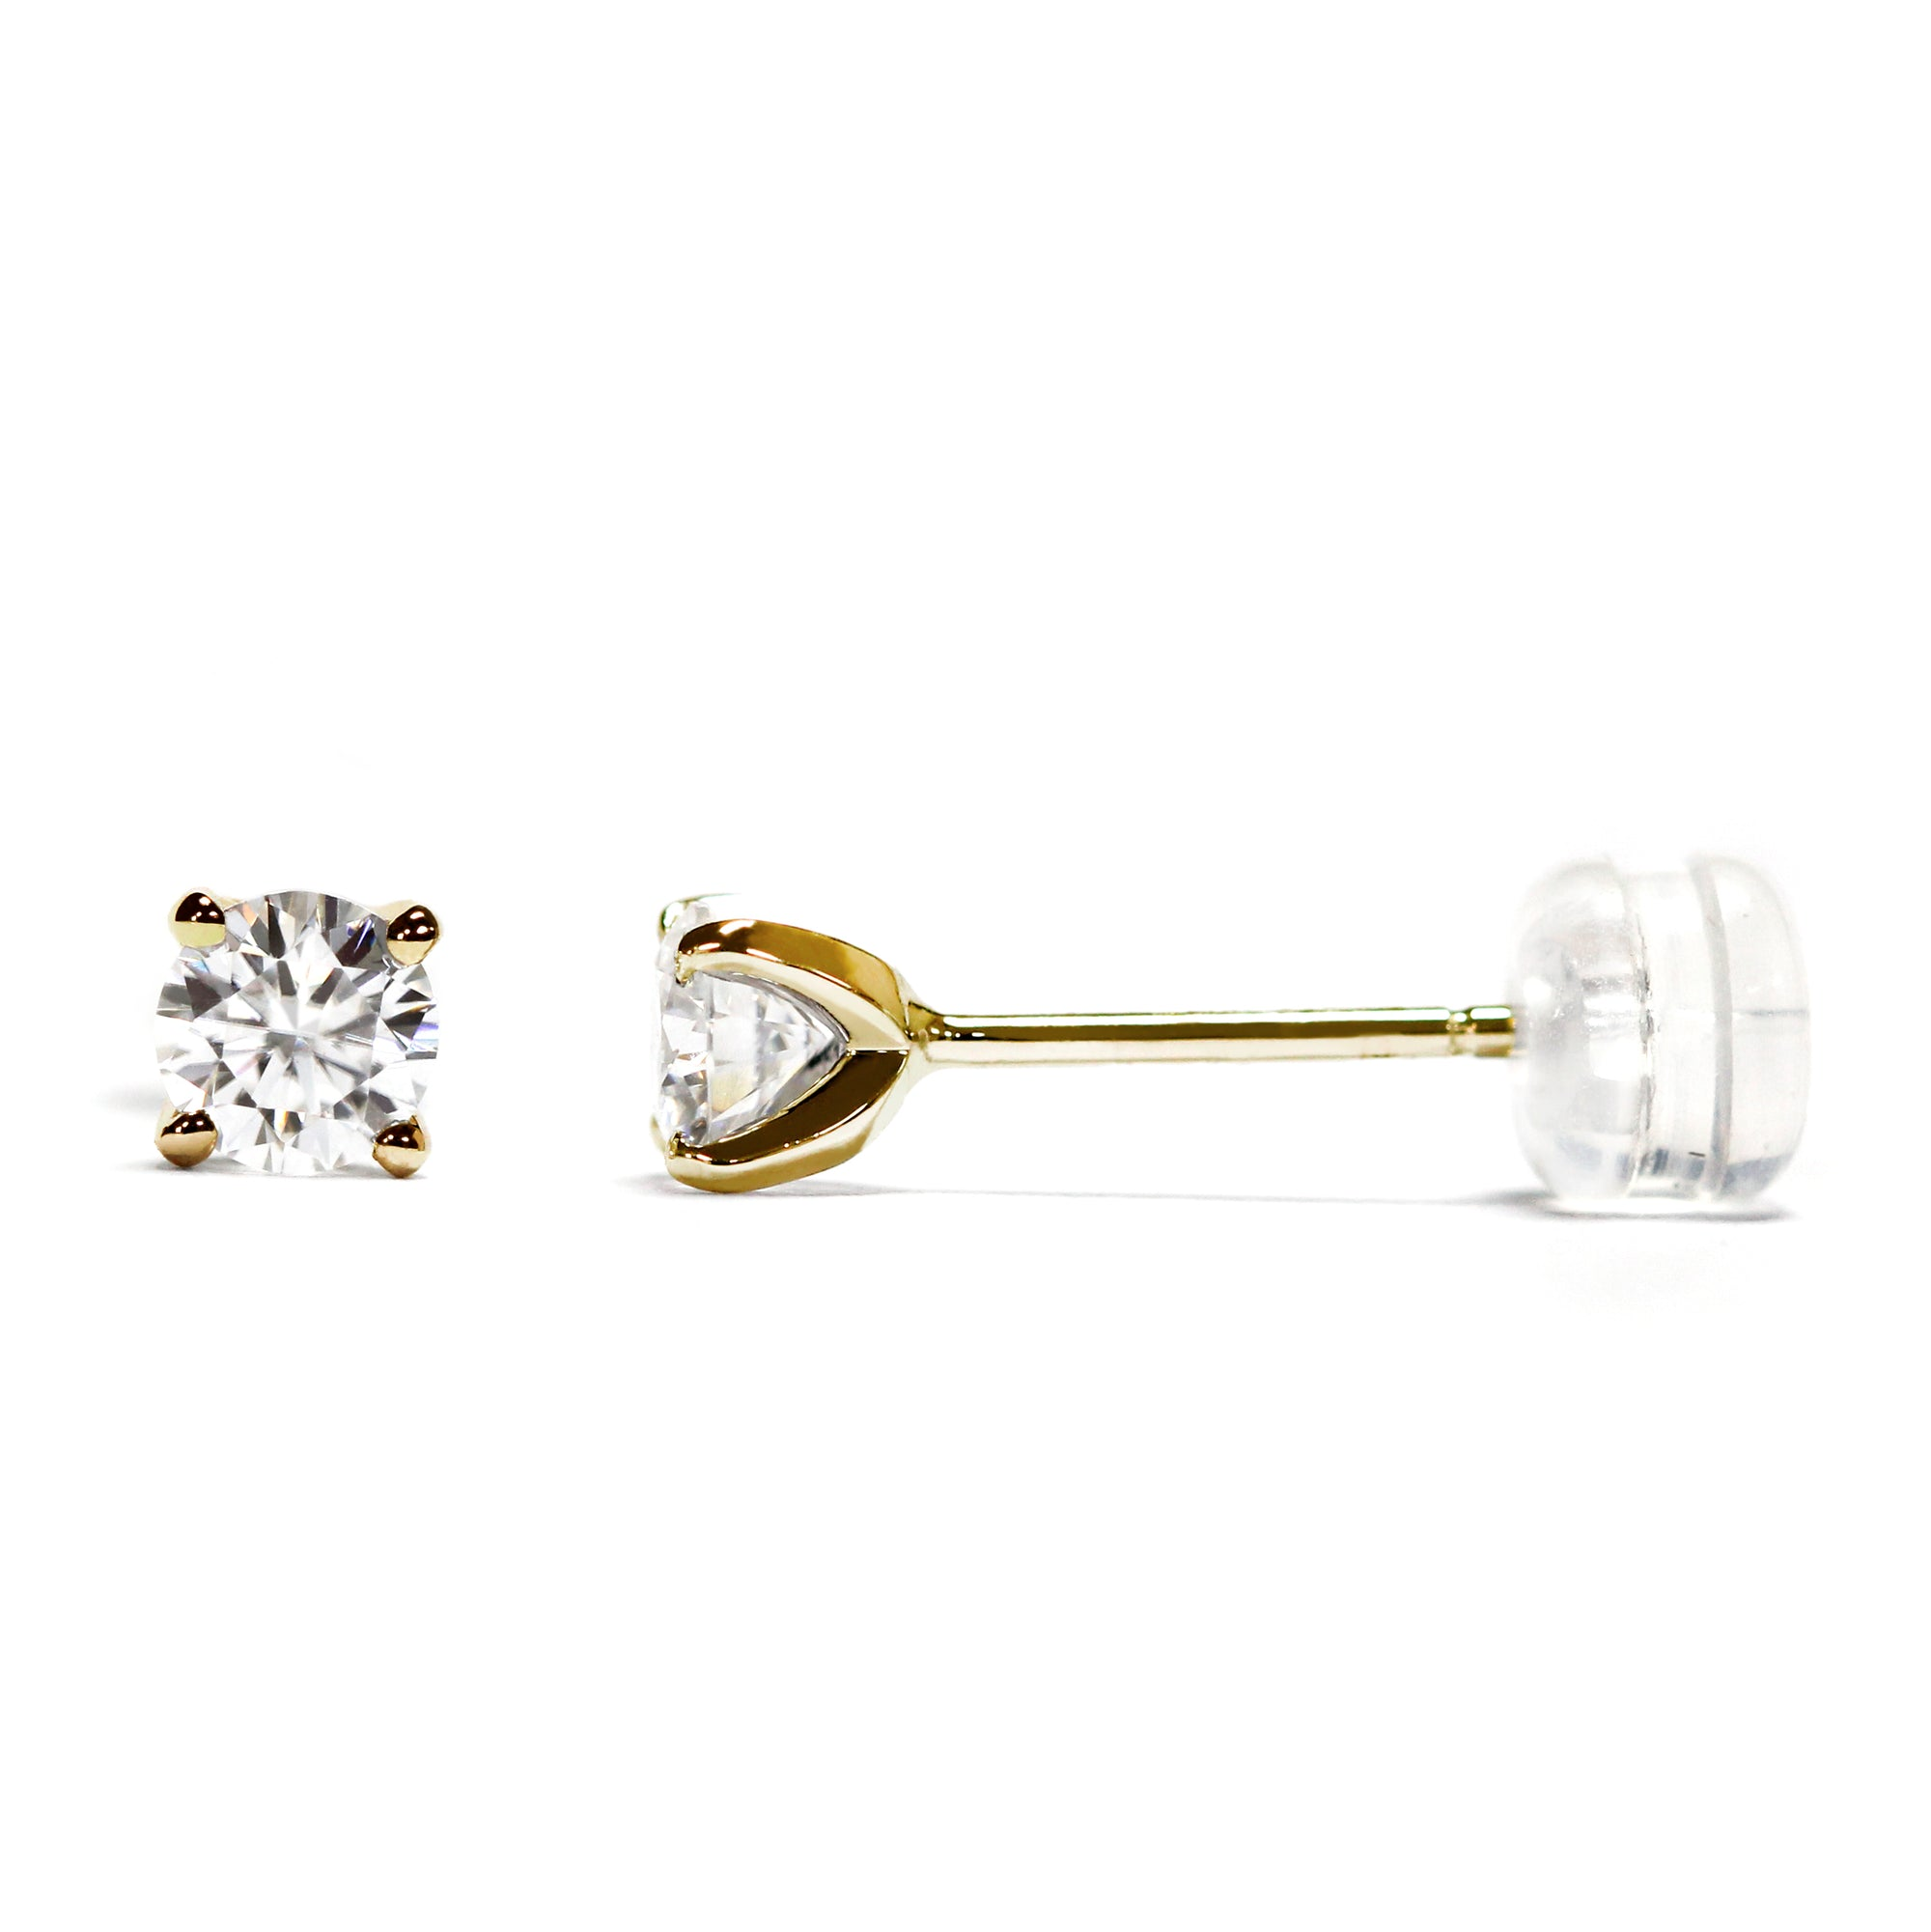 0.3 Carat Moissanite Solitaire 18K Gold Stud Earrings with Soft Silicone Gold Insert Backings - LeCaine Gems